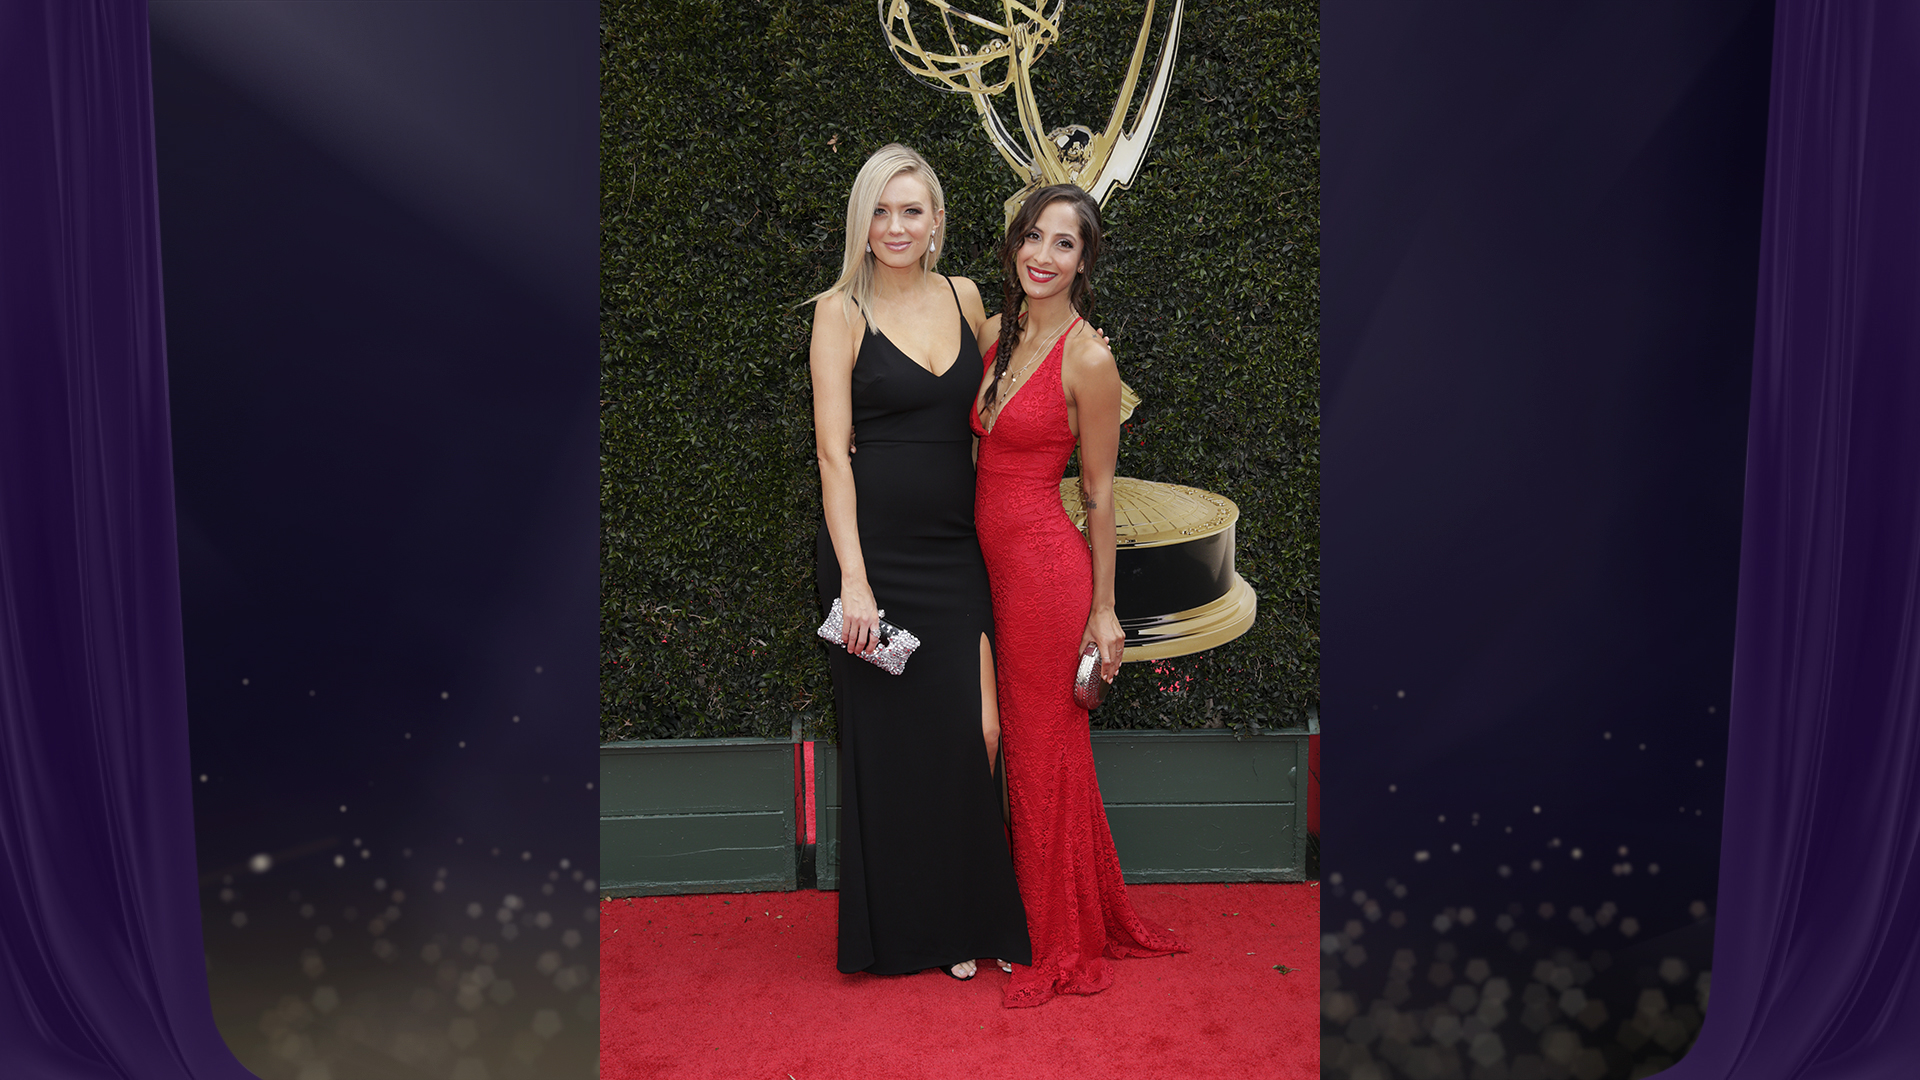 Melissa Ordway and Christel Khalil, costars on The Young and the Restless, look like they're ready to get the Daytime Emmy party started!